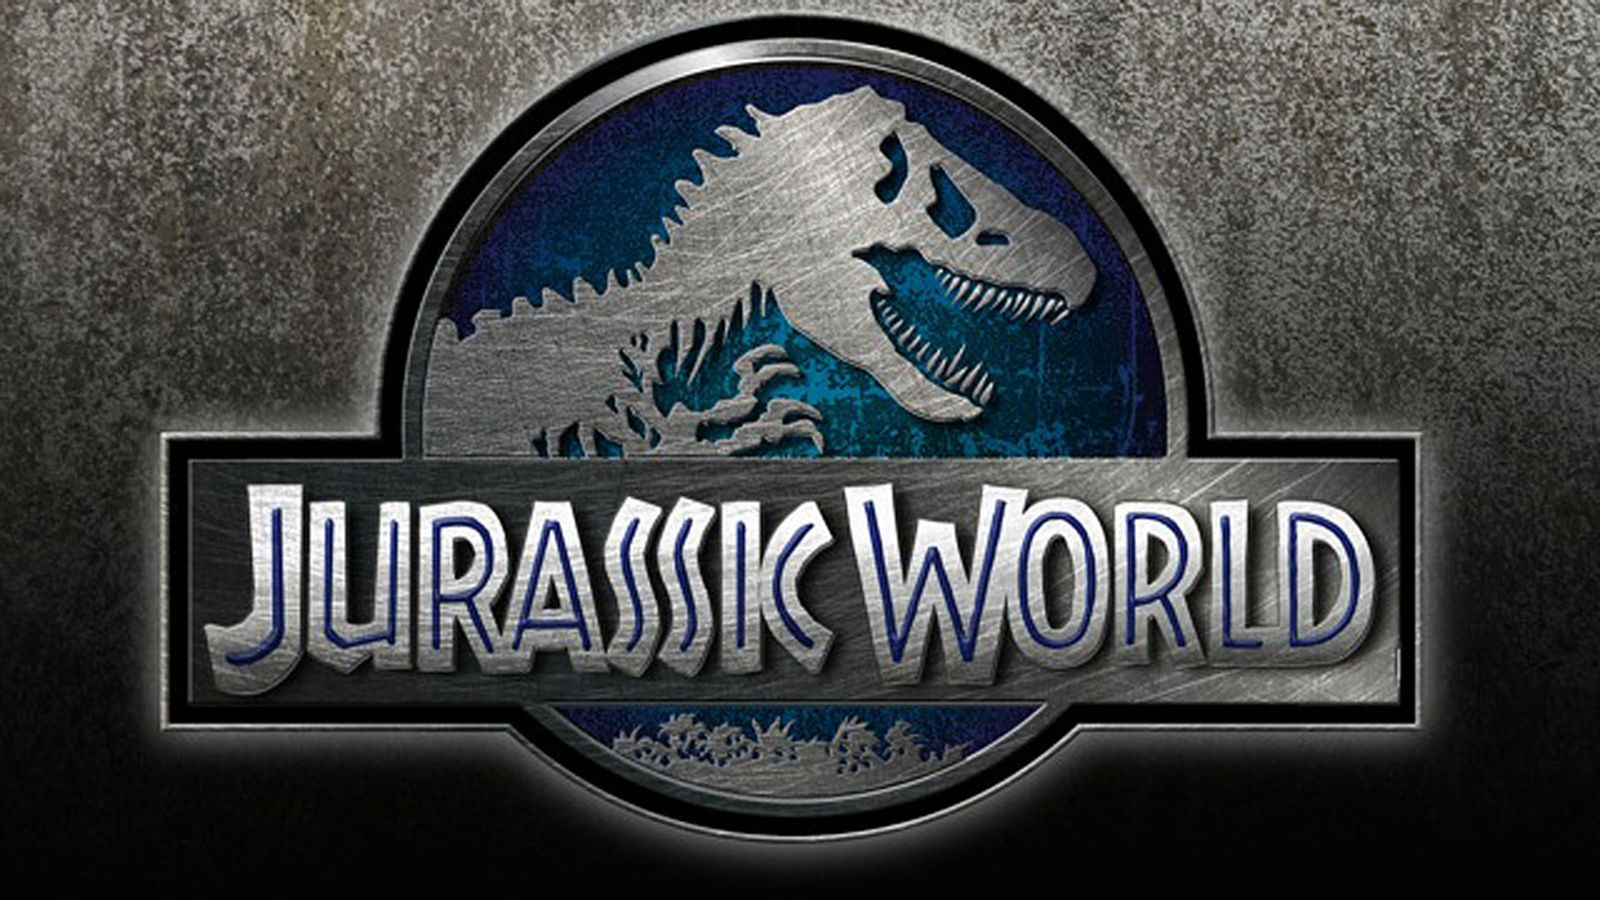 an analysis of the setting and plot of the story of jurassic park A list of important facts about michael crichton's jurassic park, including setting, climax, protagonists, and antagonists.